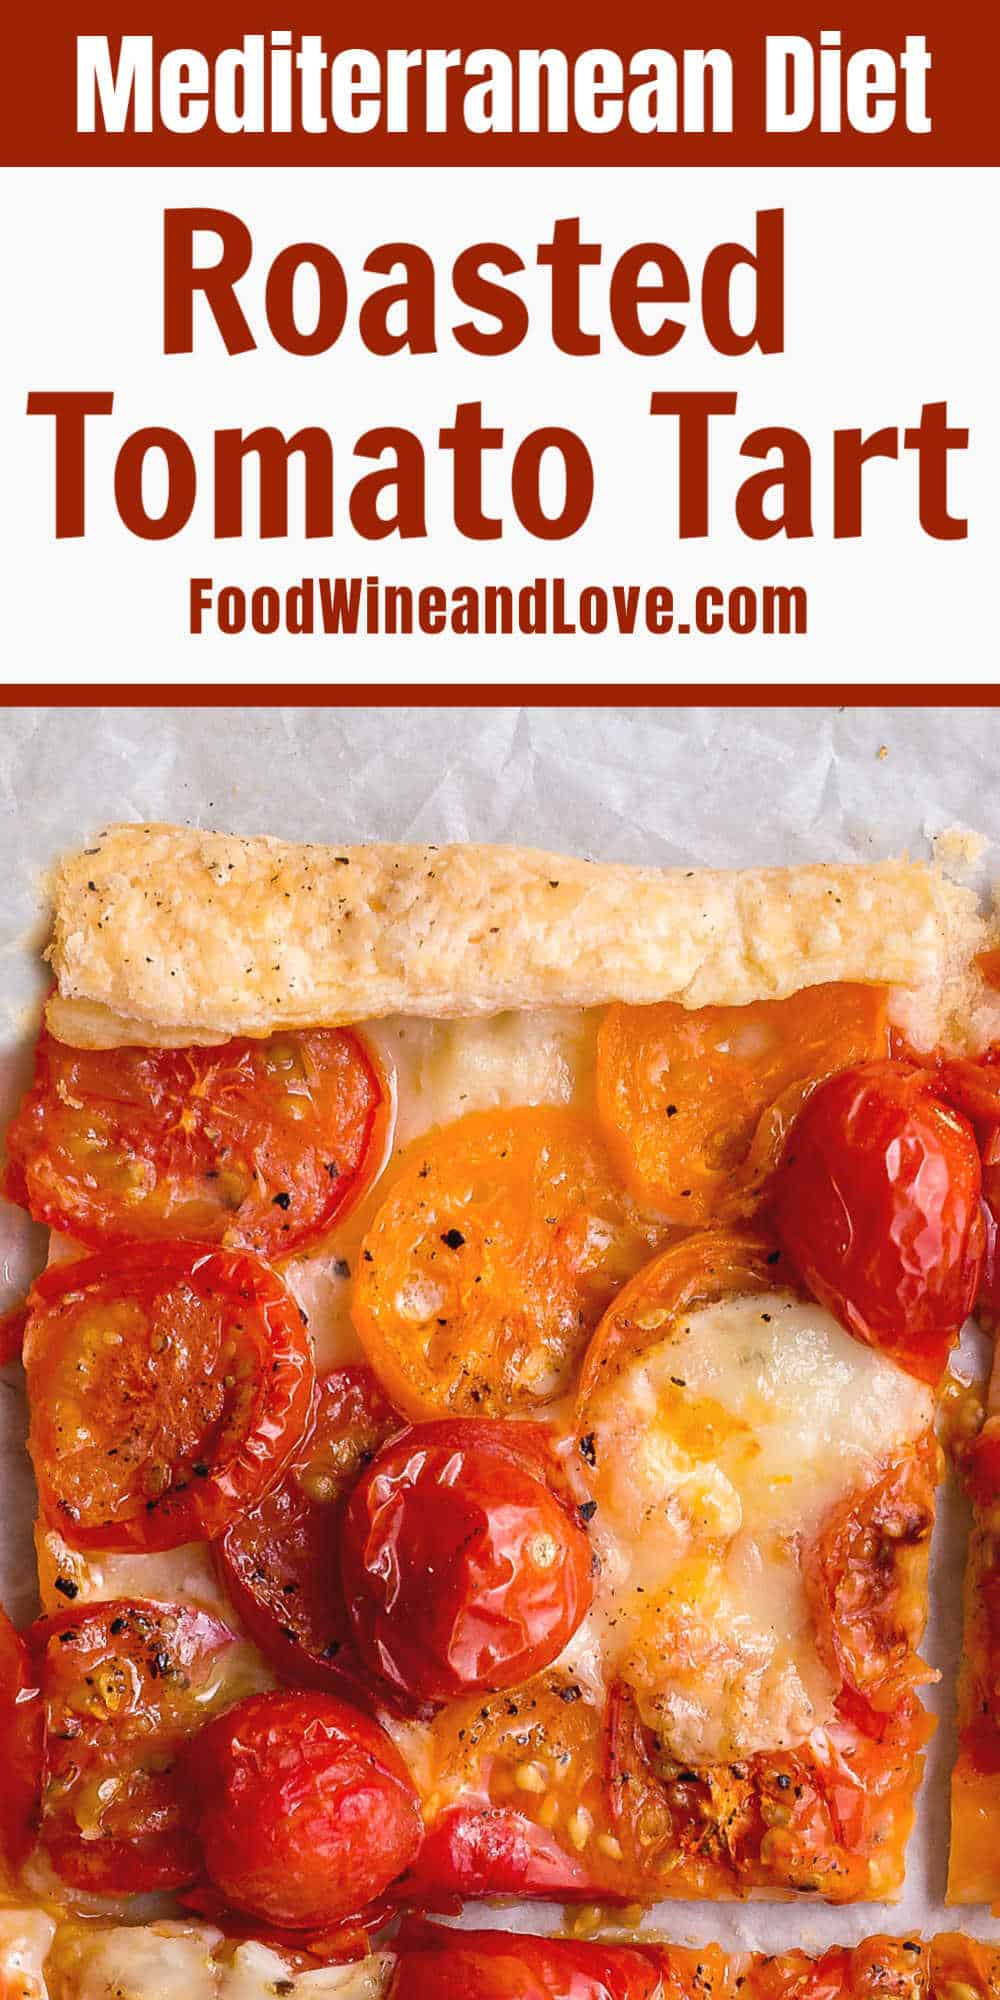 Simple Oven Roasted Tomato Tart recipe for the Mediterranean diet